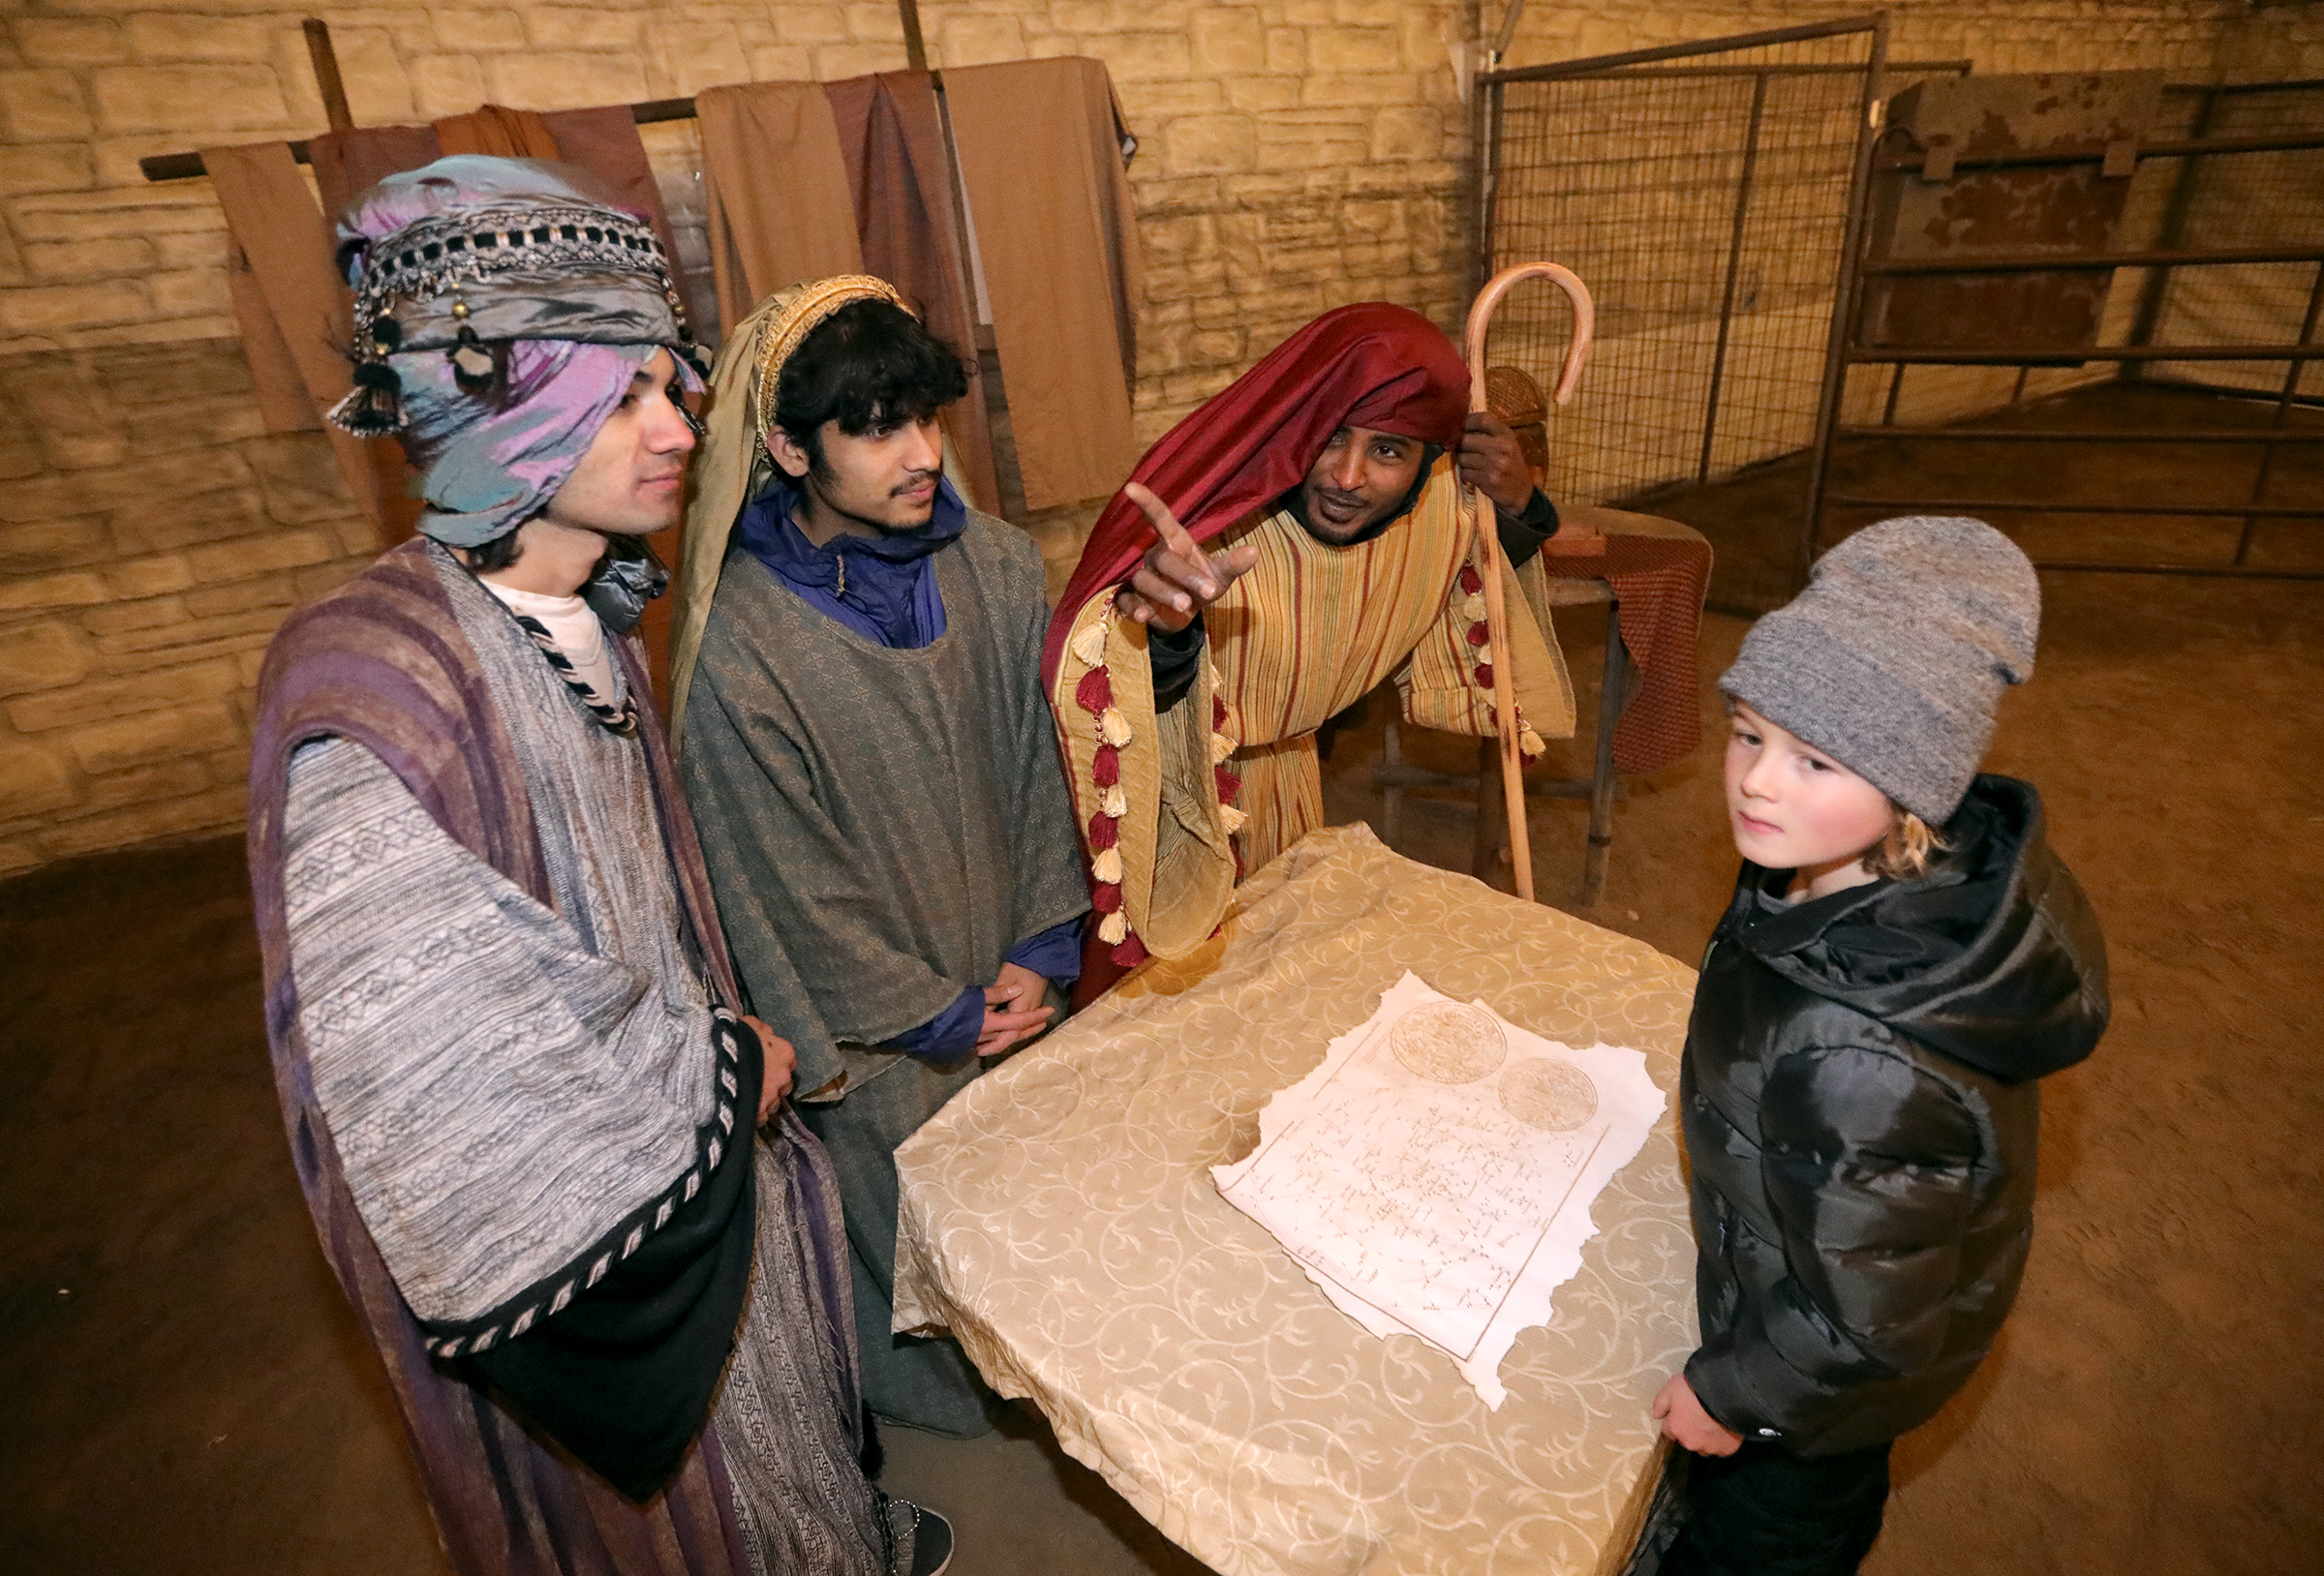 """Biidur Dhakal, Ashis Dhakal and Adam Adam play wise men and show Stryder Low where to follow the star to find baby Jesus at """"A Babe Is Born"""" live Nativity at the Lehi Round-Up Rodeo Grounds in Lehi on Monday, Dec. 2, 2019. The Dhakals are refugees from Nepal, and Adam is a refugee from Eritrea."""